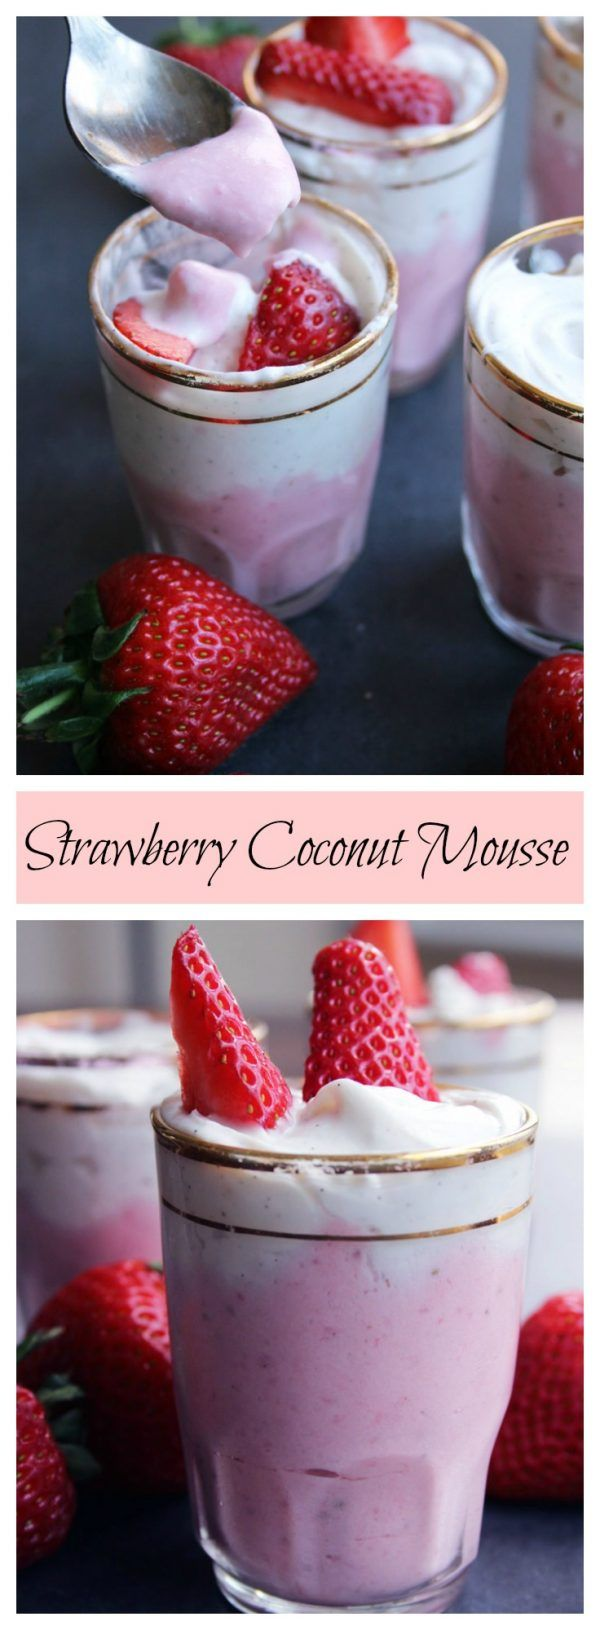 So incredibly easy and impossibly delicious: Strawberry Coconut Mousse. Only four ingredients, vegan, low carb and refined sugar free!